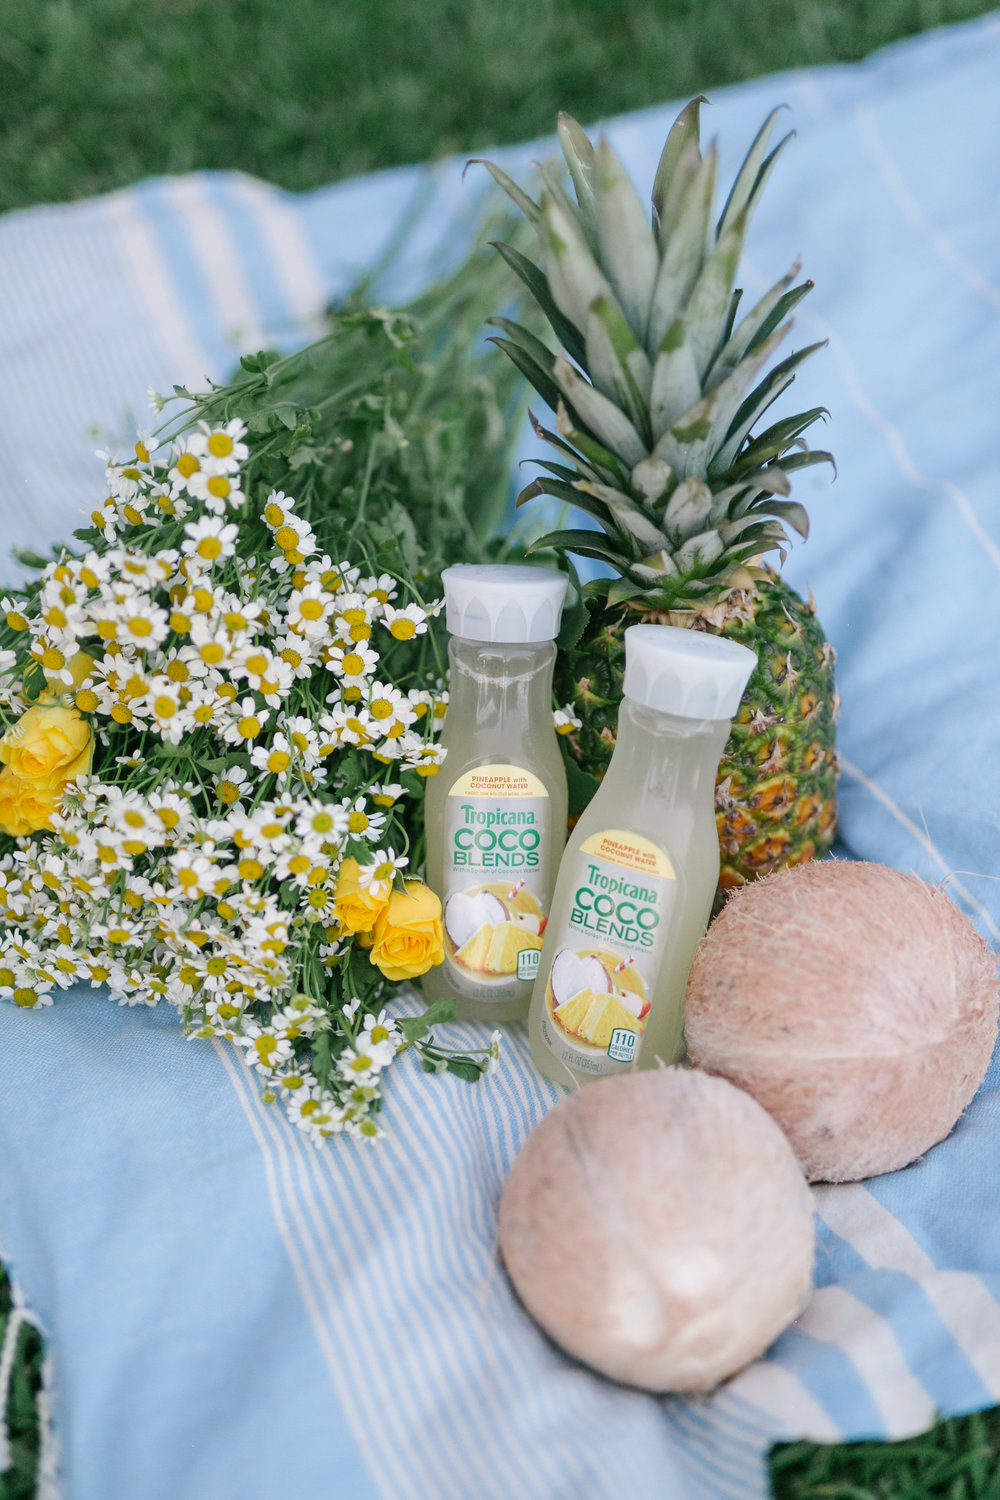 Tropicana Made-to-go Pineapple Coconut Water with Caila Quinn